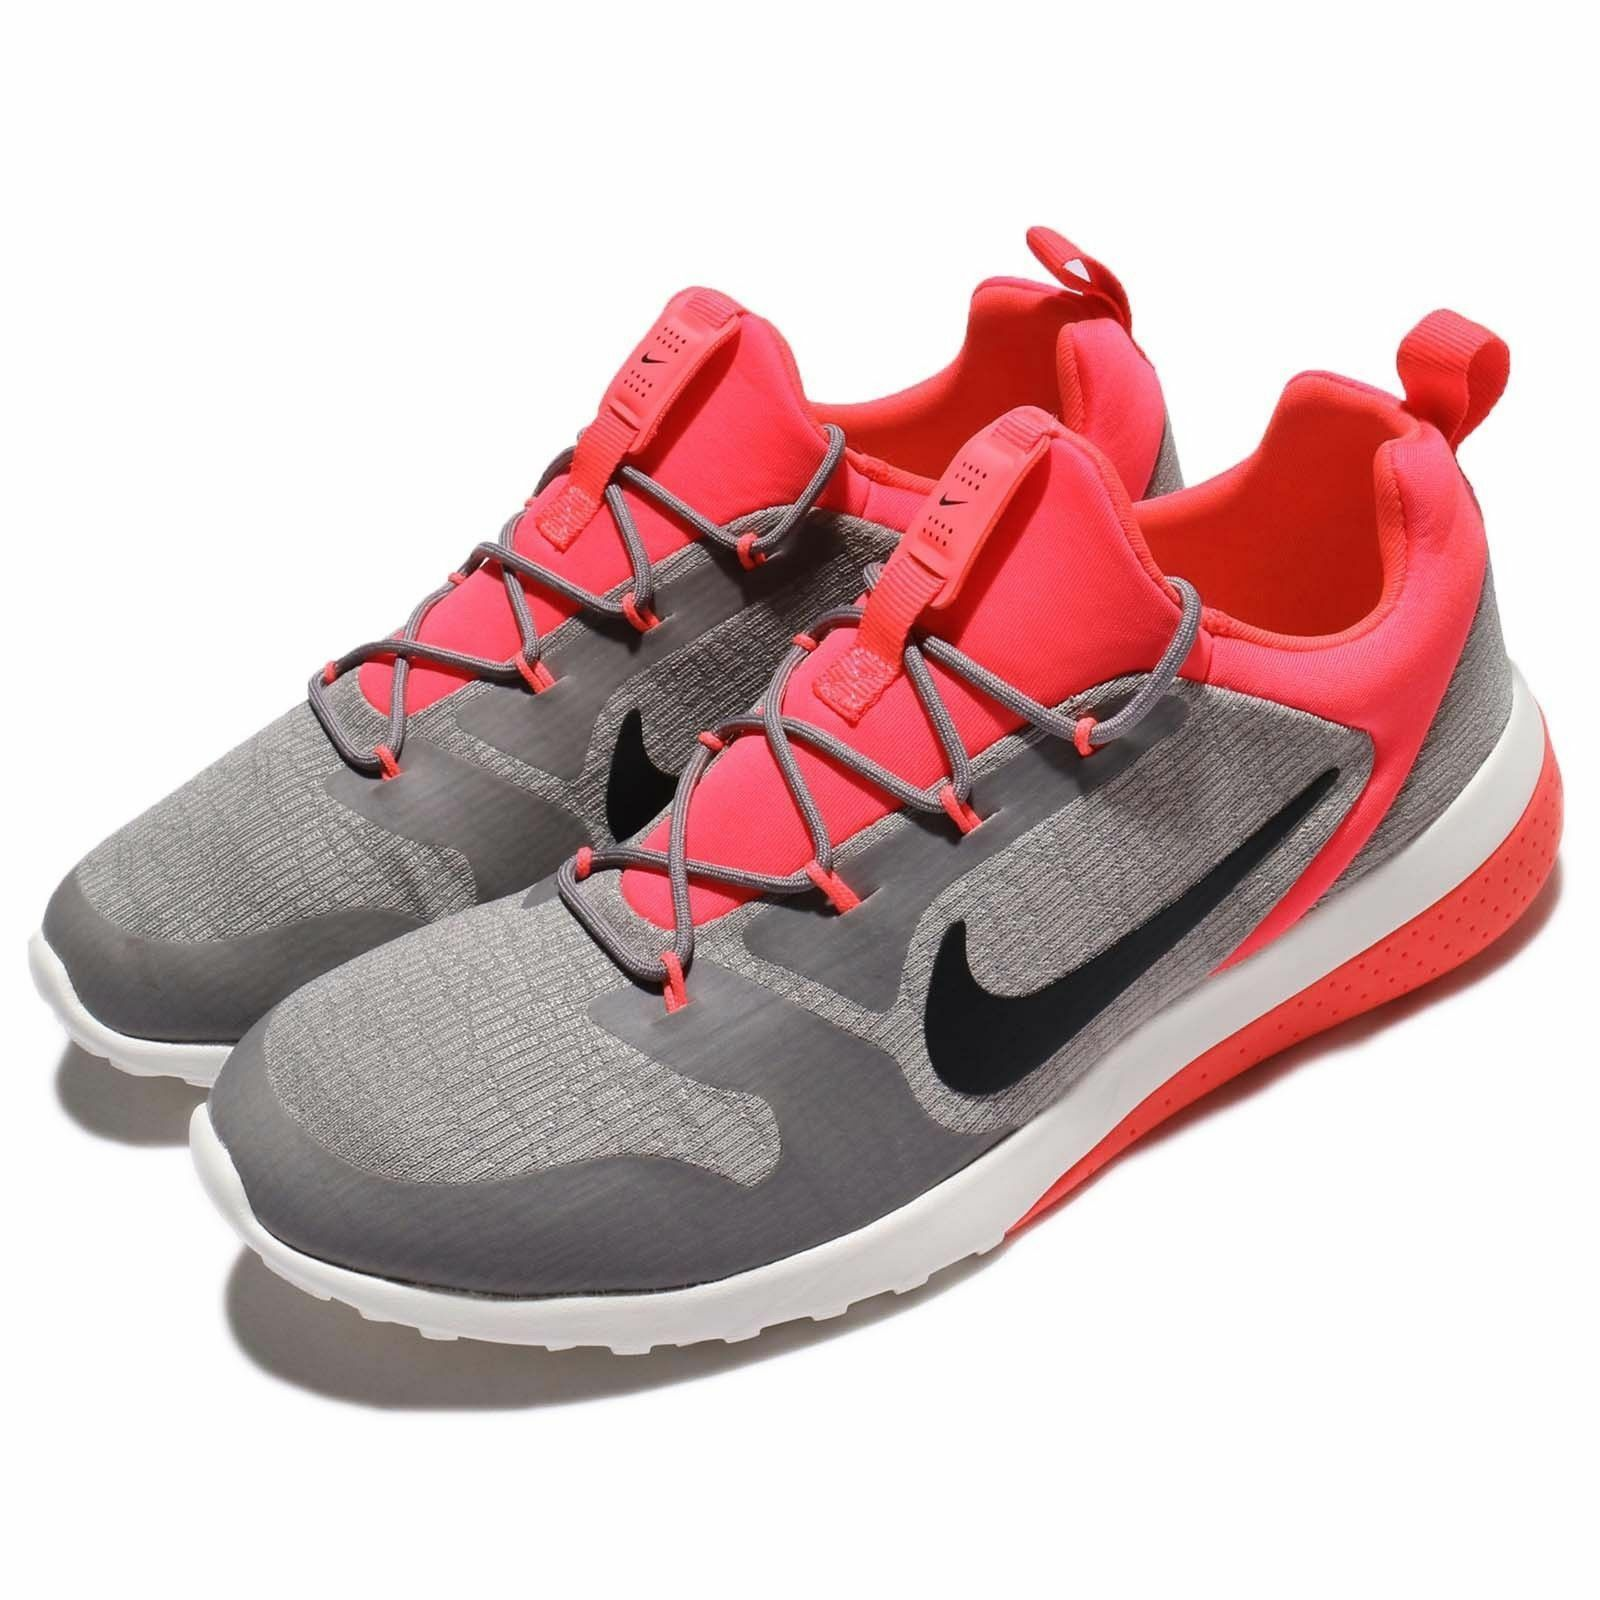 Nike Men's CK Racer Running Shoes Sneakers 916780 002 Size 10.5 NEW